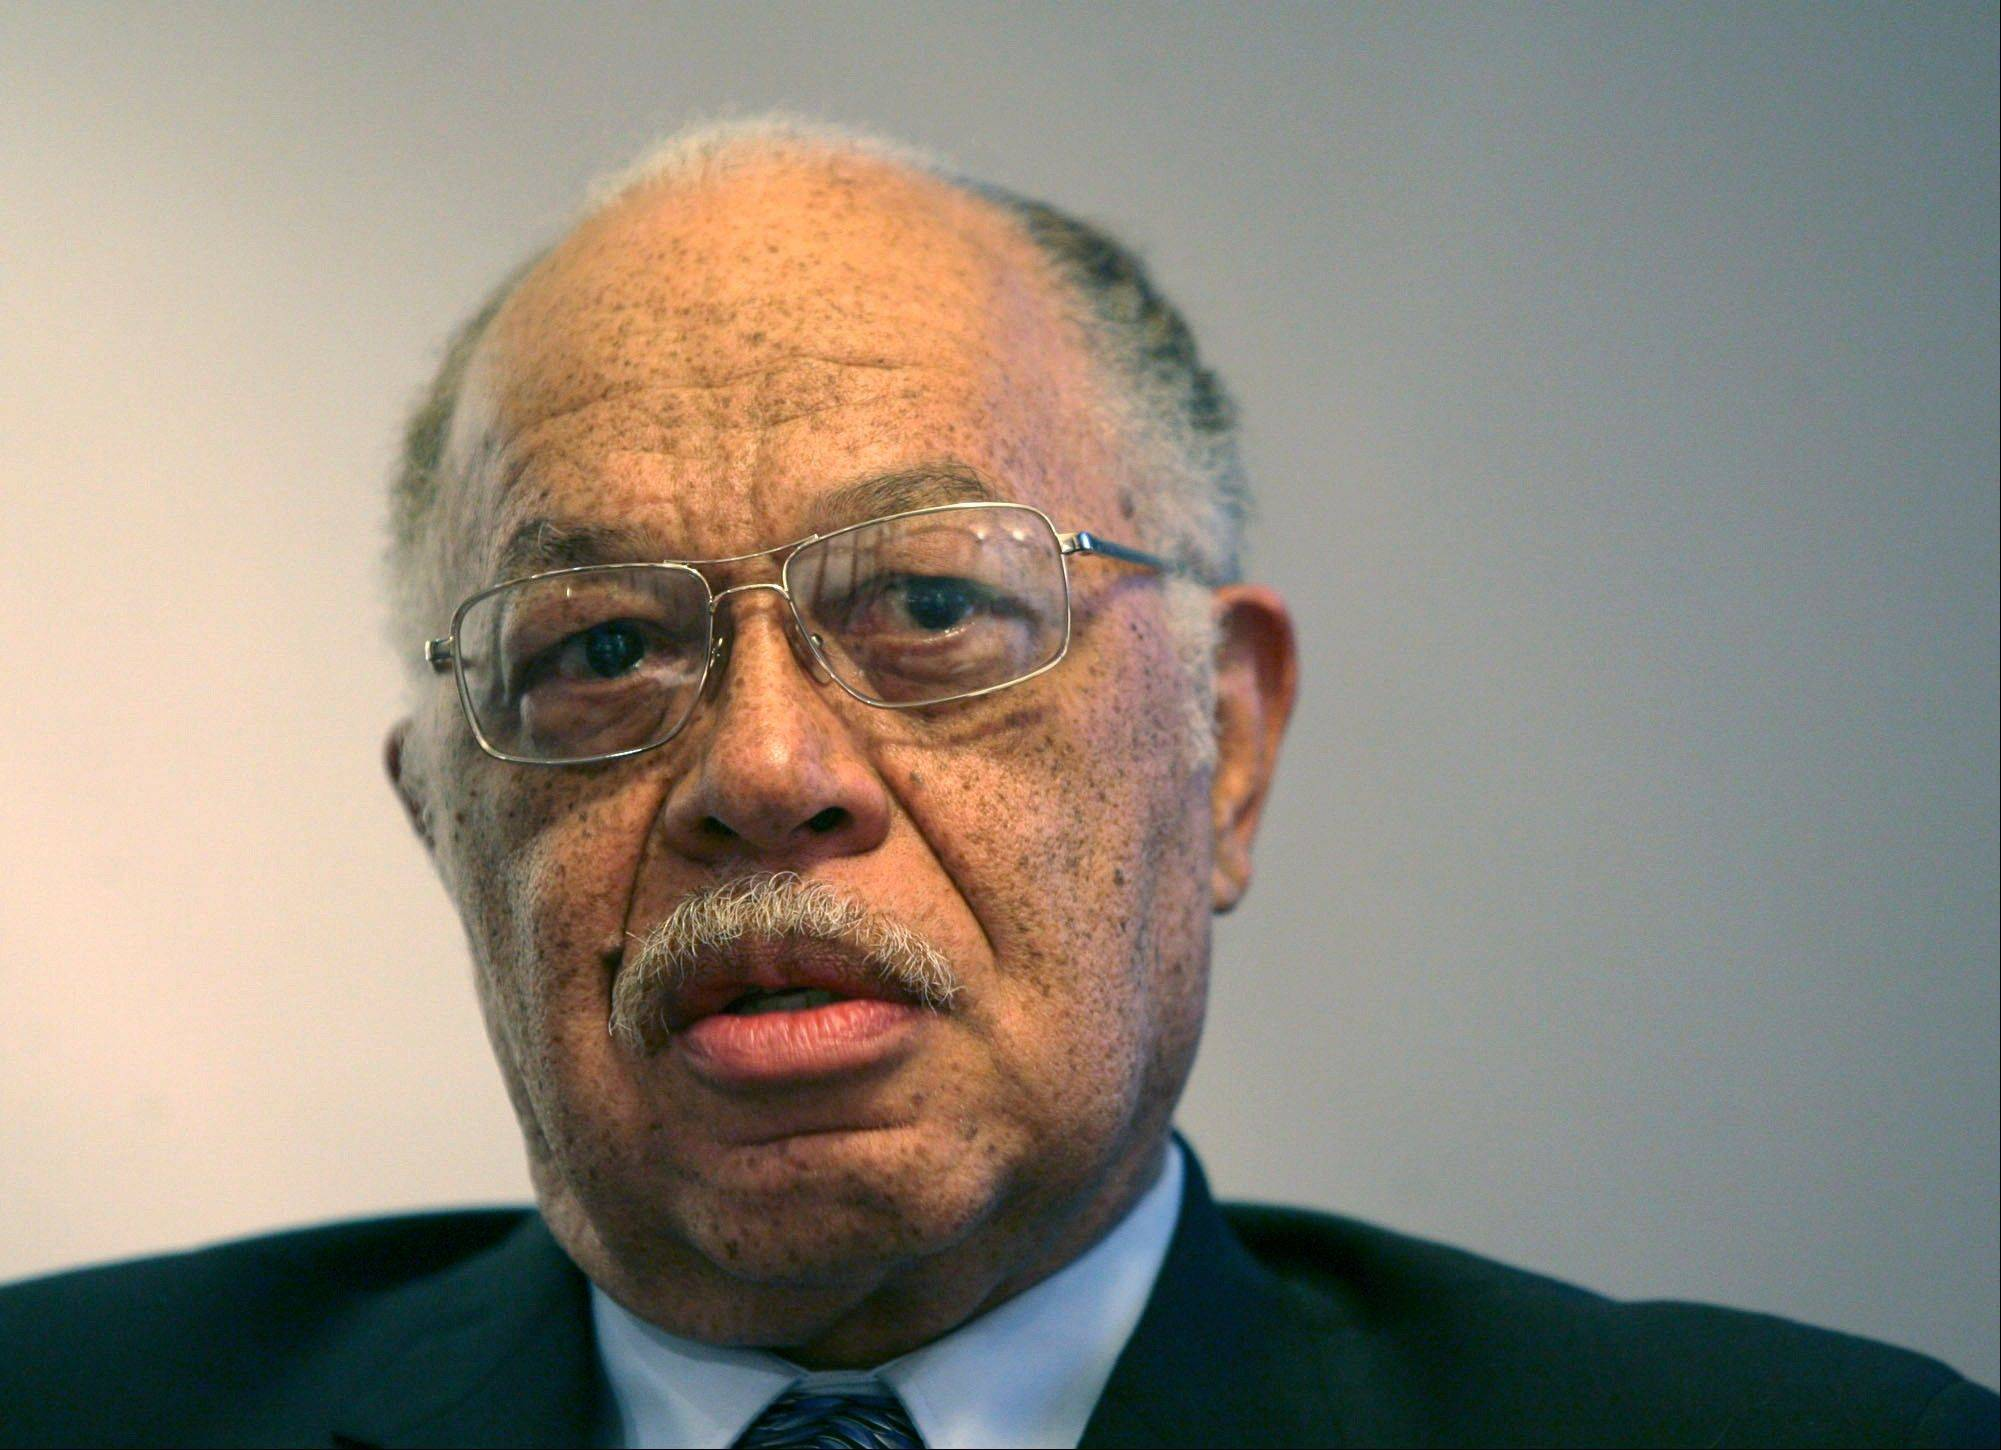 Dr. Kermit Gosnell, an abortion doctor who catered to minorities, immigrants and poor women at the Women�s Medical Society, goes on trial today on eight counts of murder, but prosecutors say he�s not the only person to blame for the deaths.